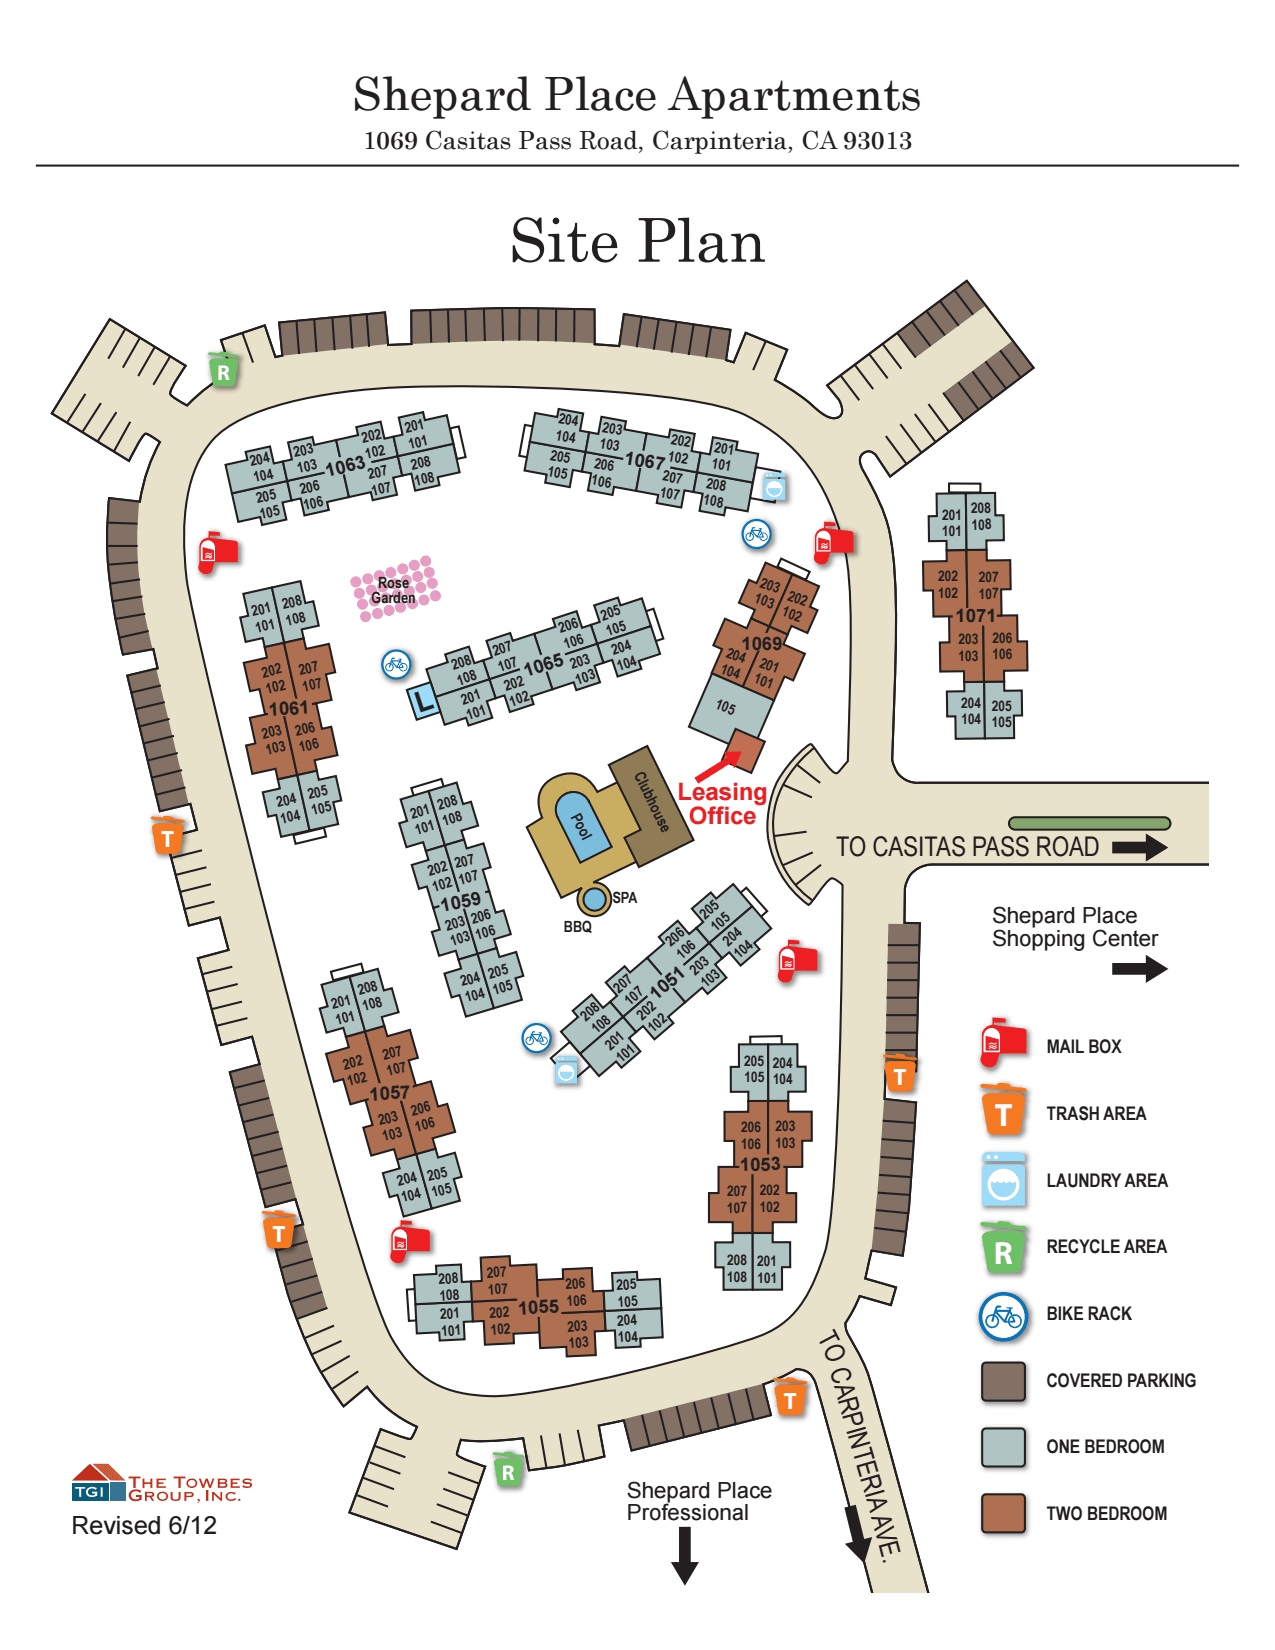 Site map of Shepard Place Apartments